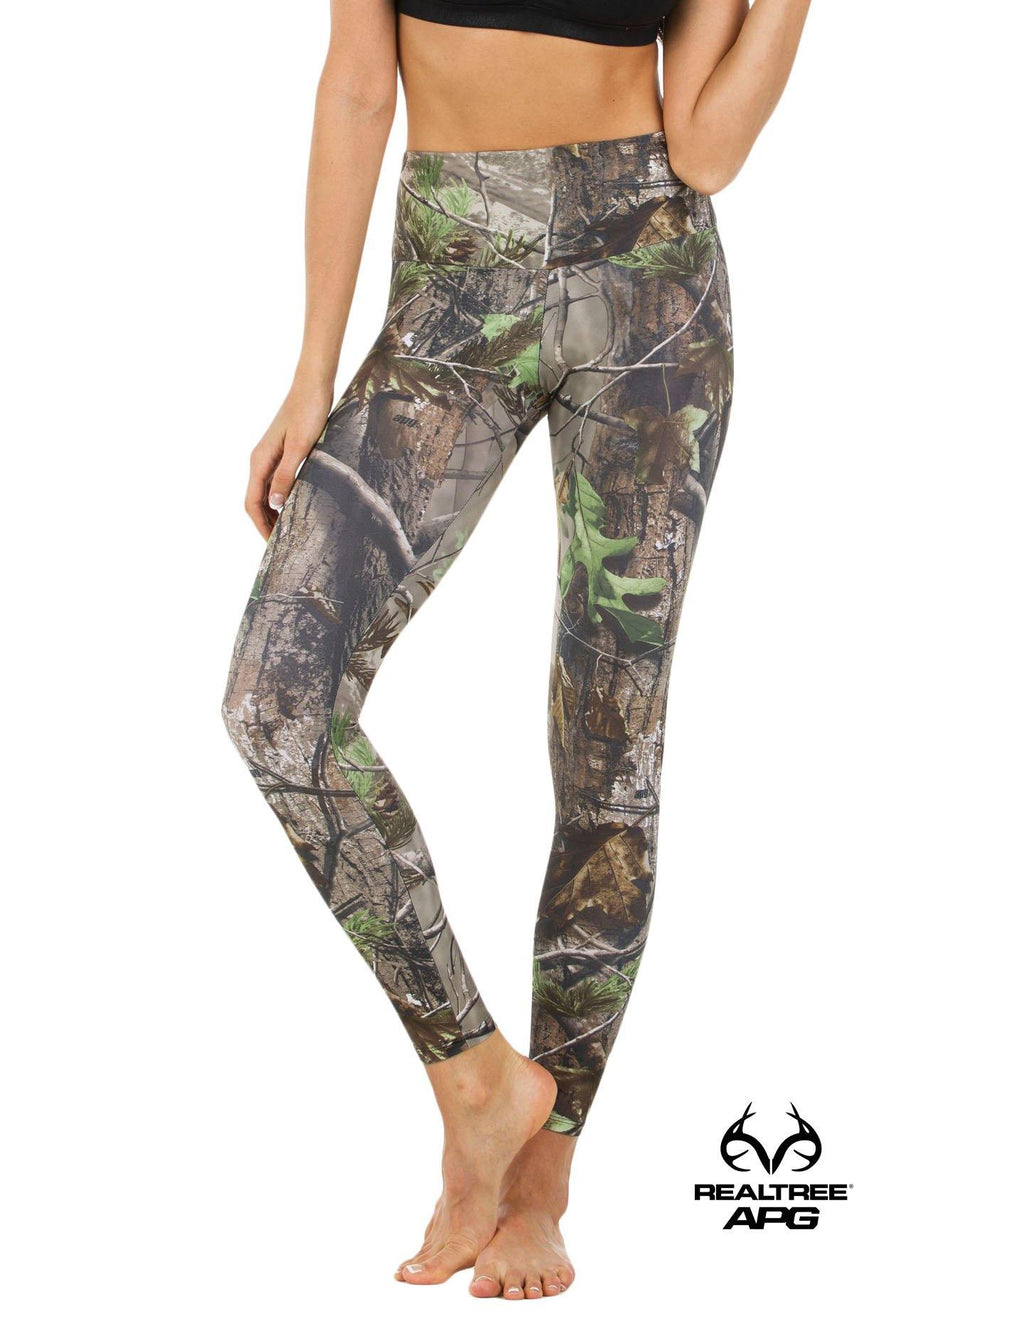 Apsara Leggings High Waist Full Length, Realtree APG